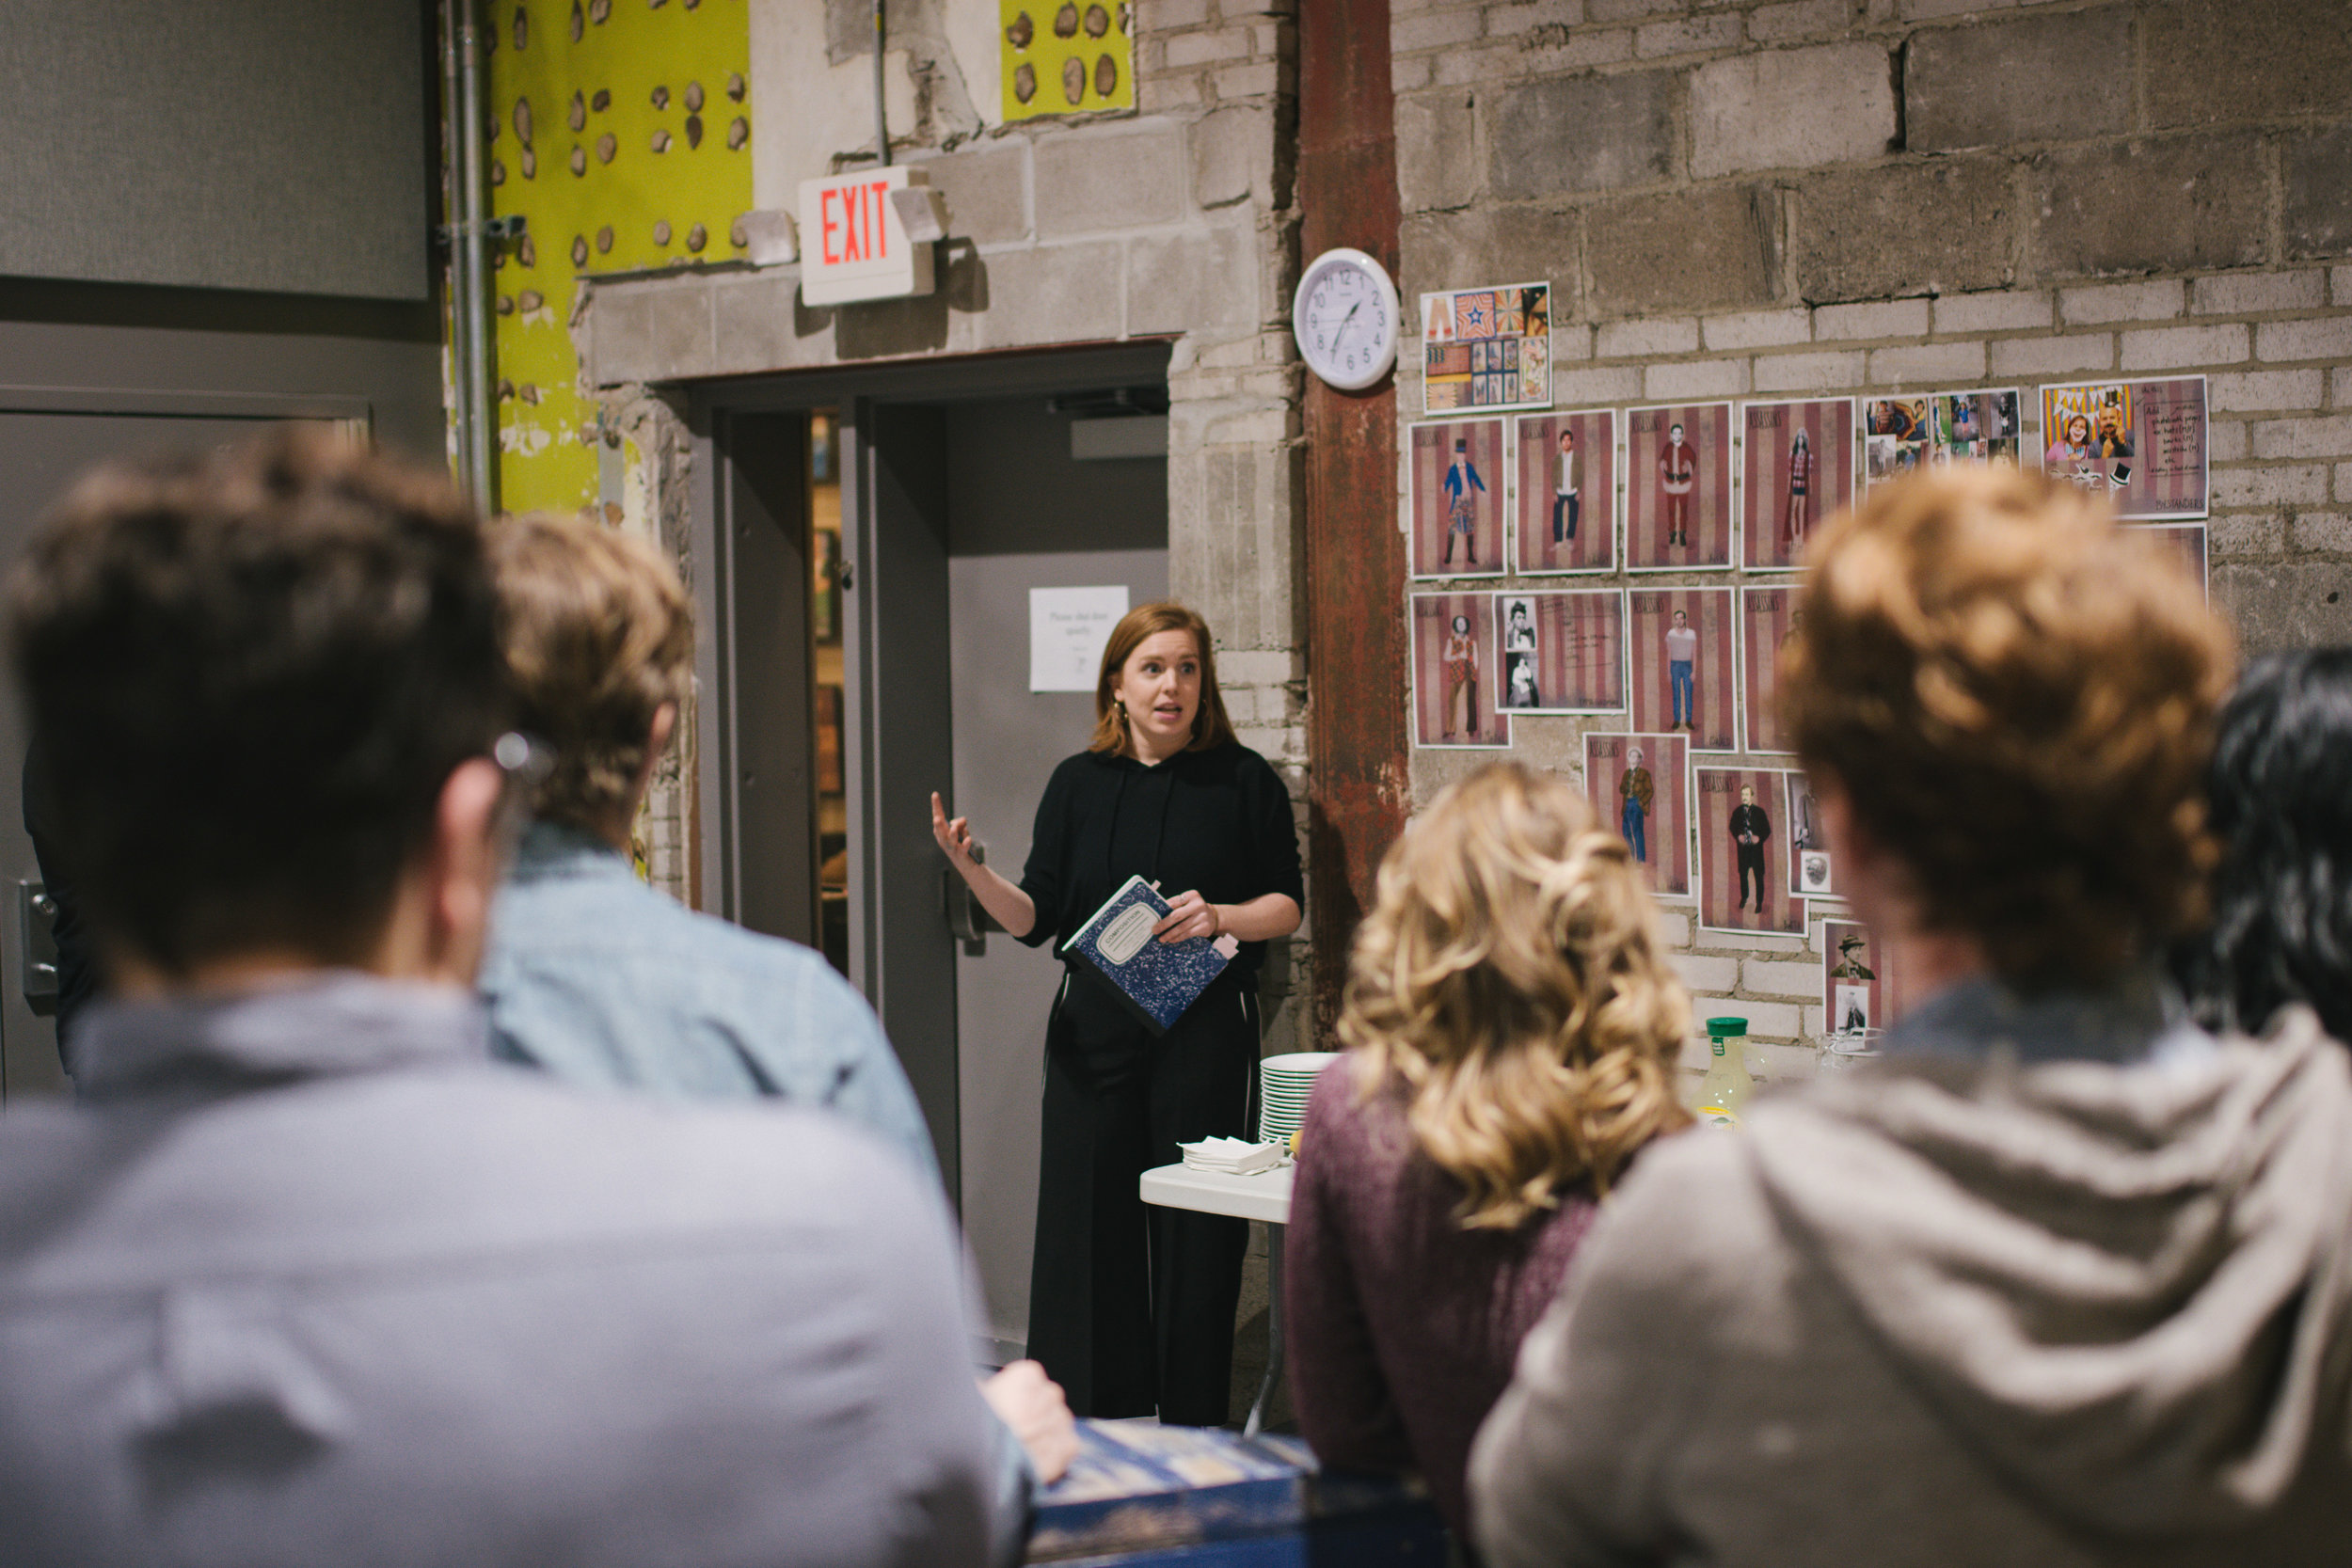 Alice Fredrickson, Costume Designer, discusses her costume design concepts with the cast. Photo credit Emilee Elofson